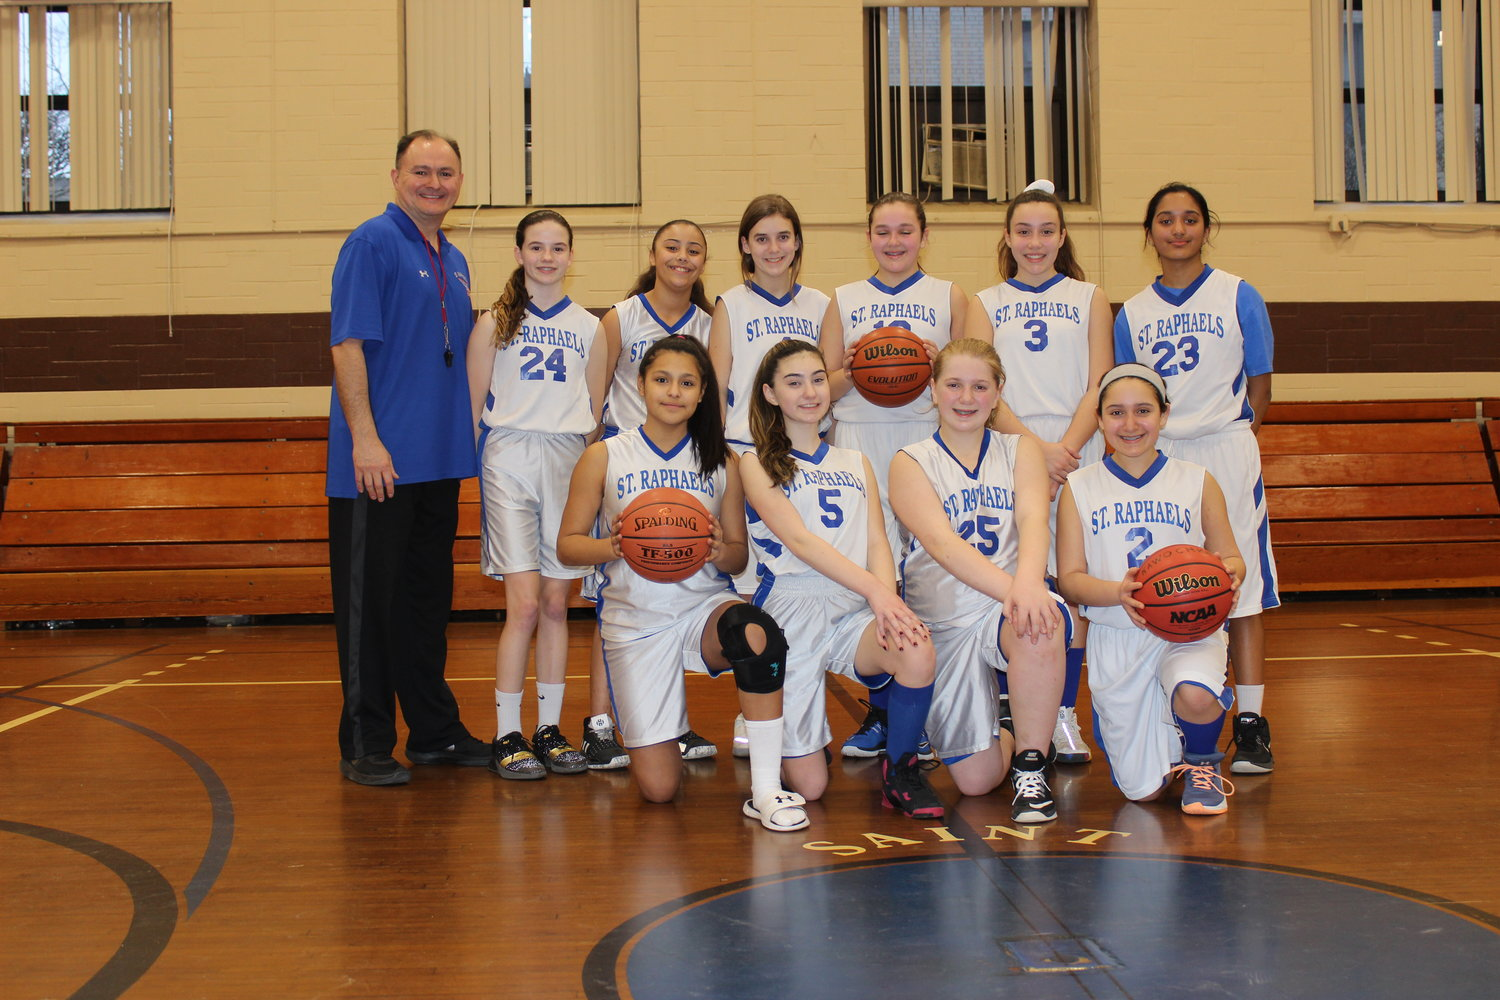 c2b2933de The St. Raphael s seventh-grade girls  basketball team went undefeated in  the Long